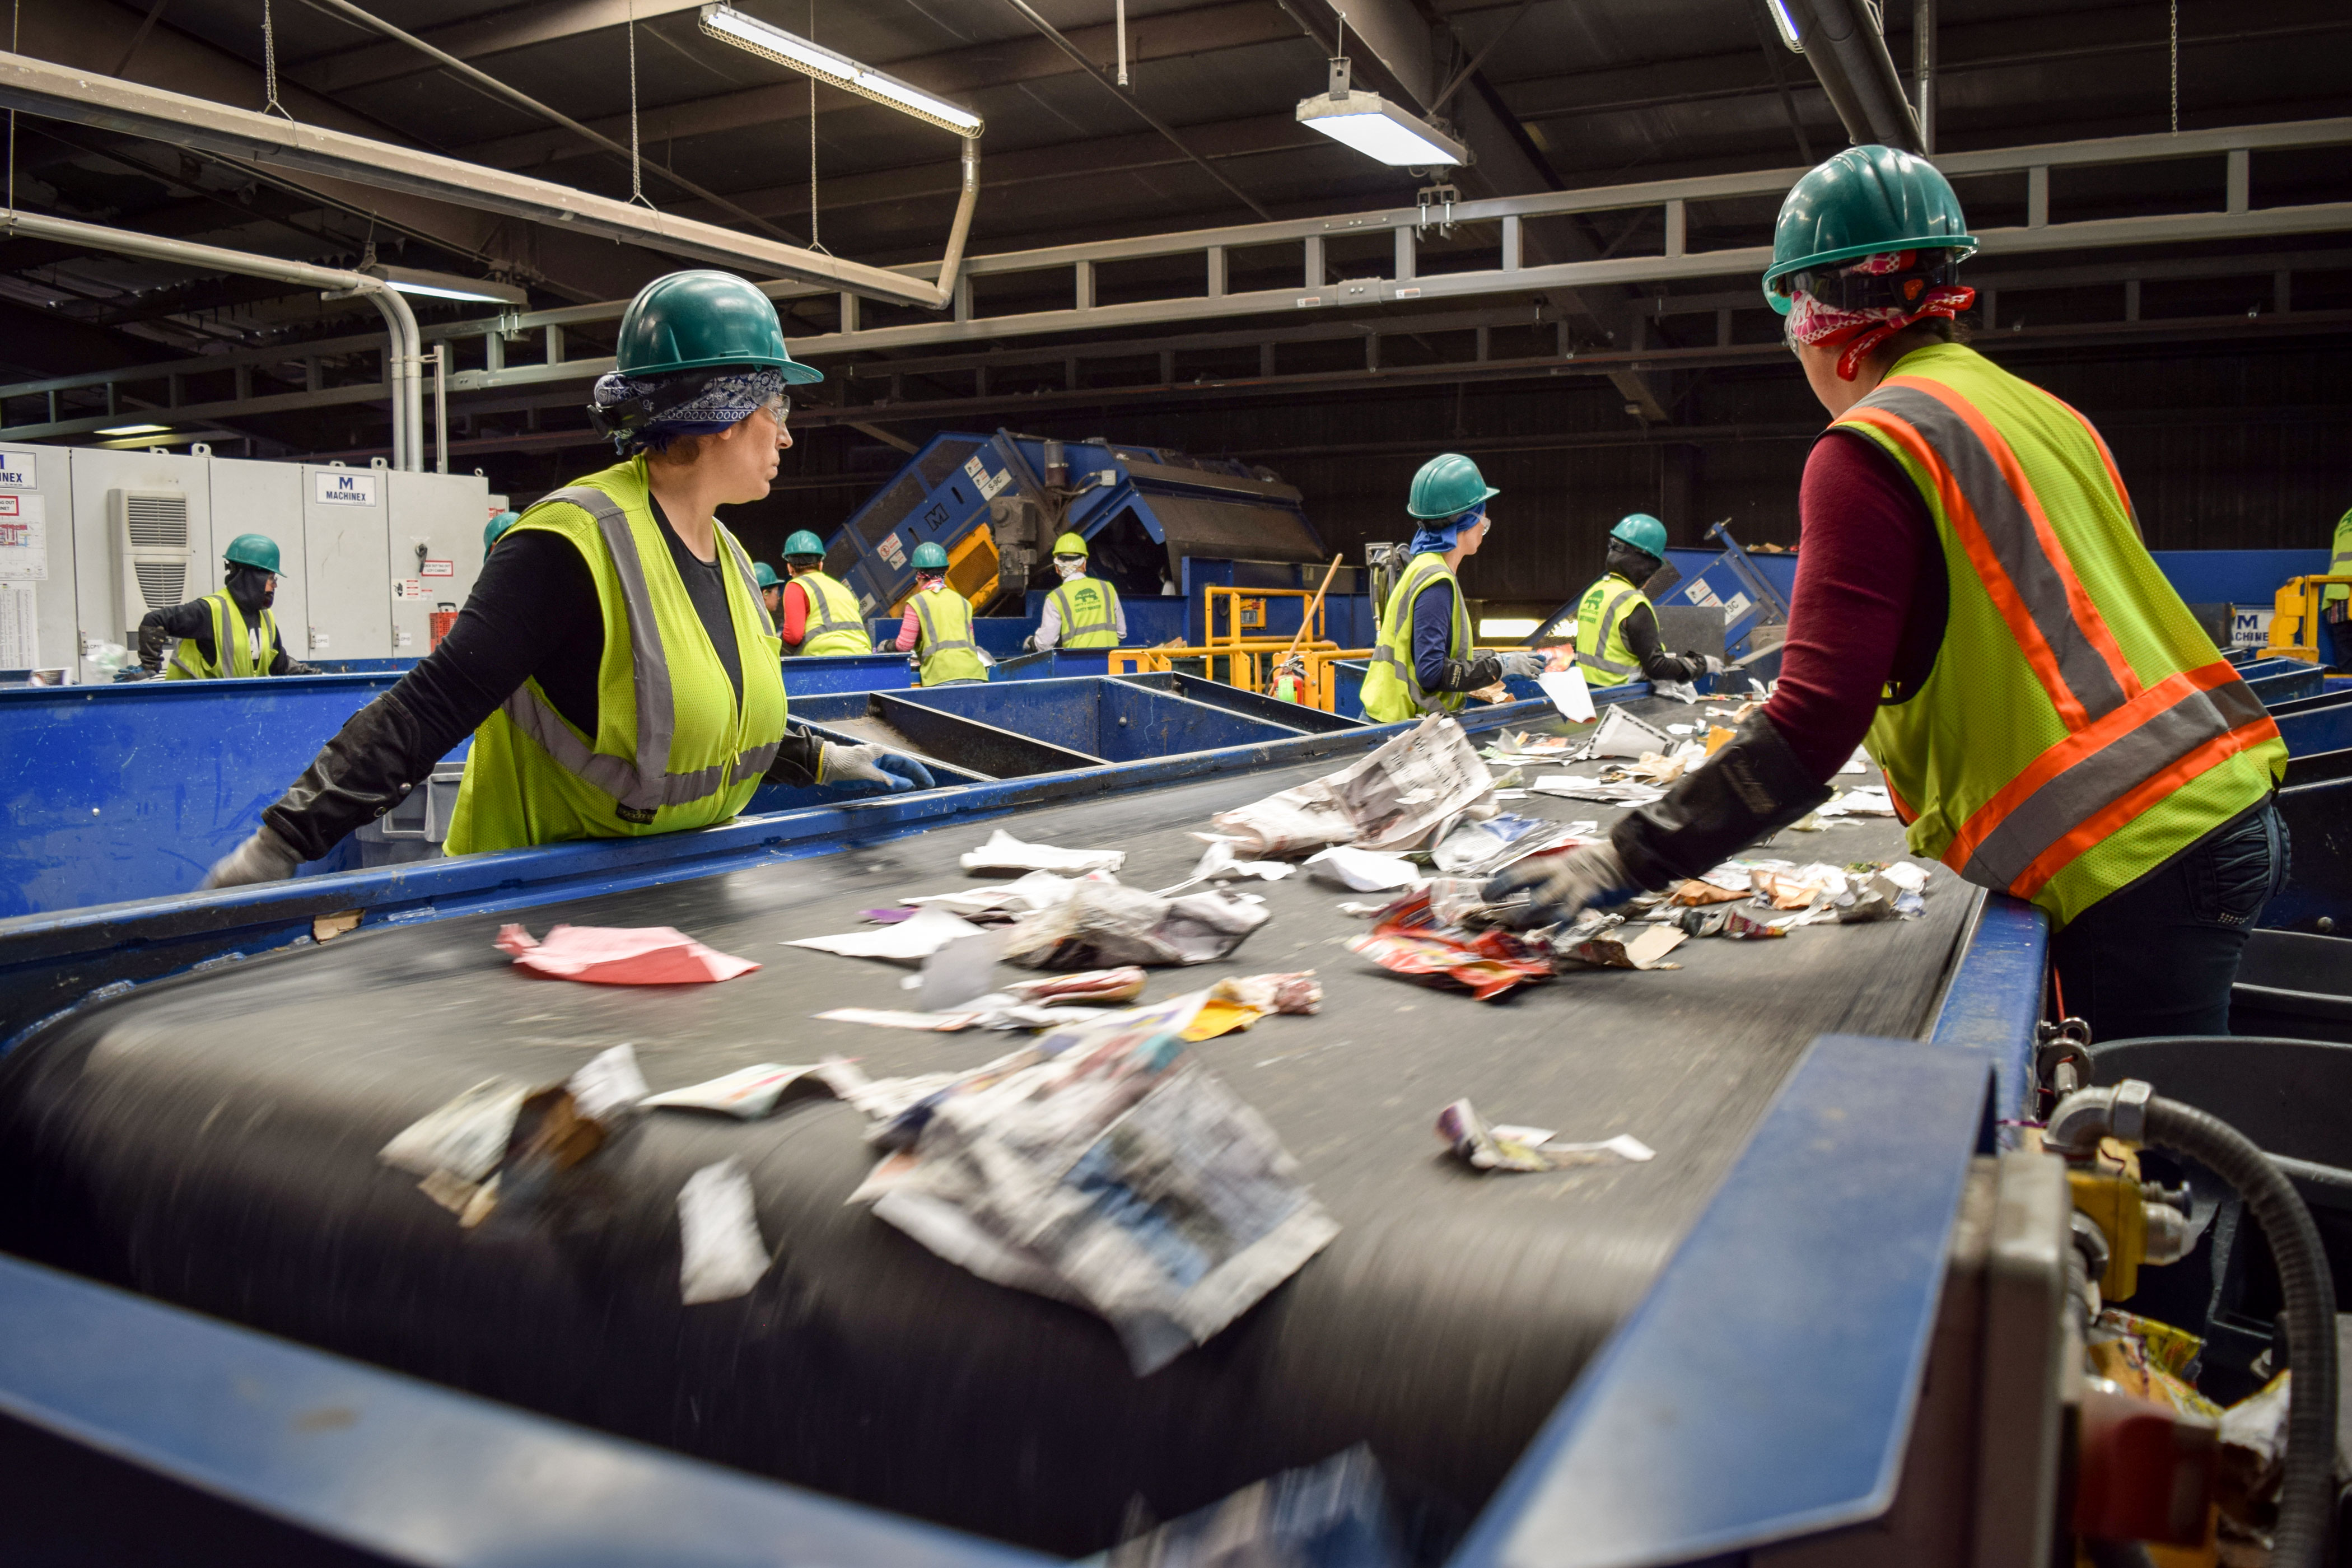 Workers look for items that can not be recycled at Alpine Waste and Recycling in Denver on June 19, 2018.